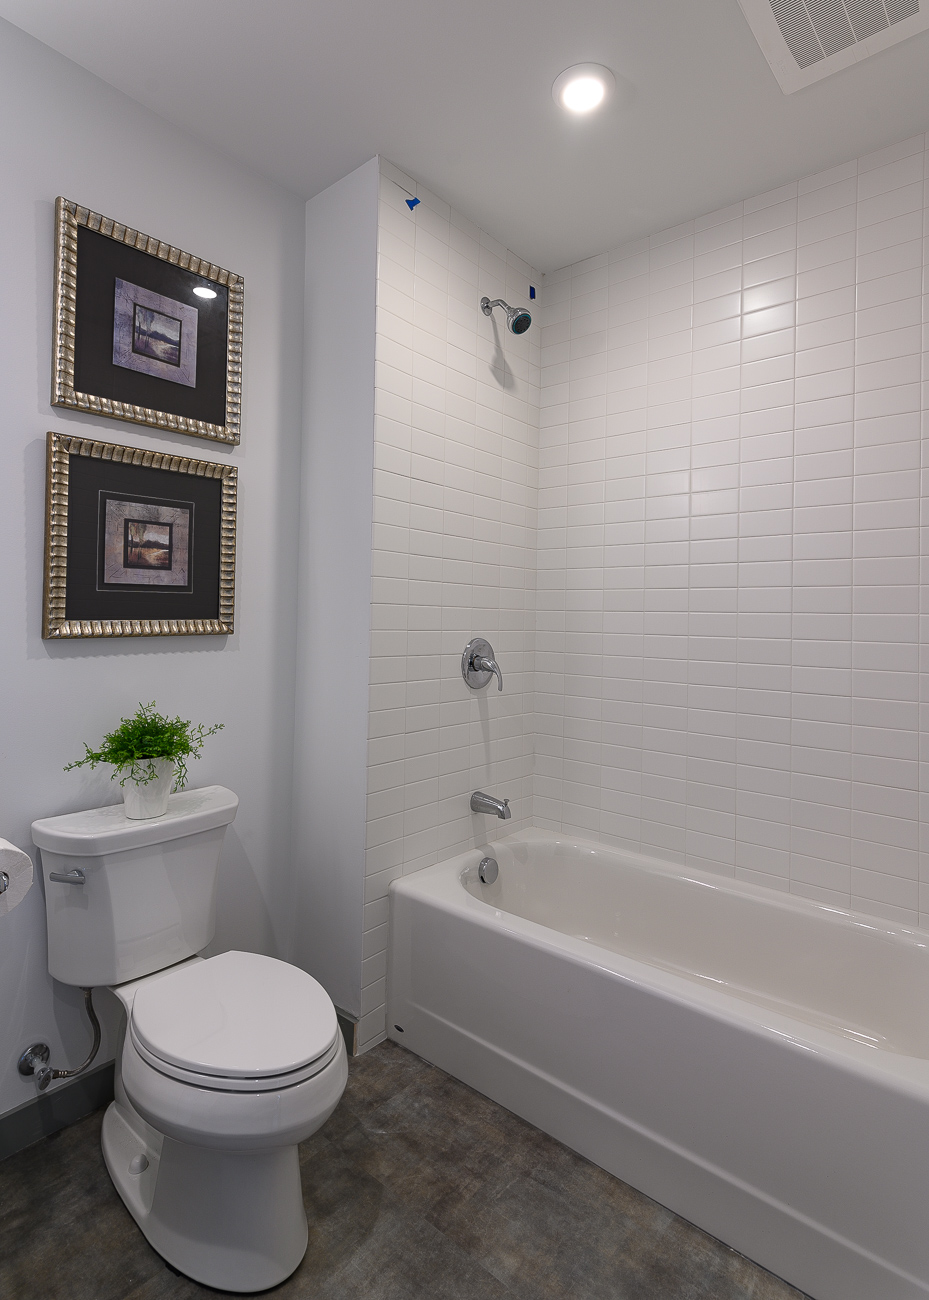 Two-bedroom units feature bathtubs in addition to shower stalls. / Image: Phil Armstrong // Published: 9.2.19